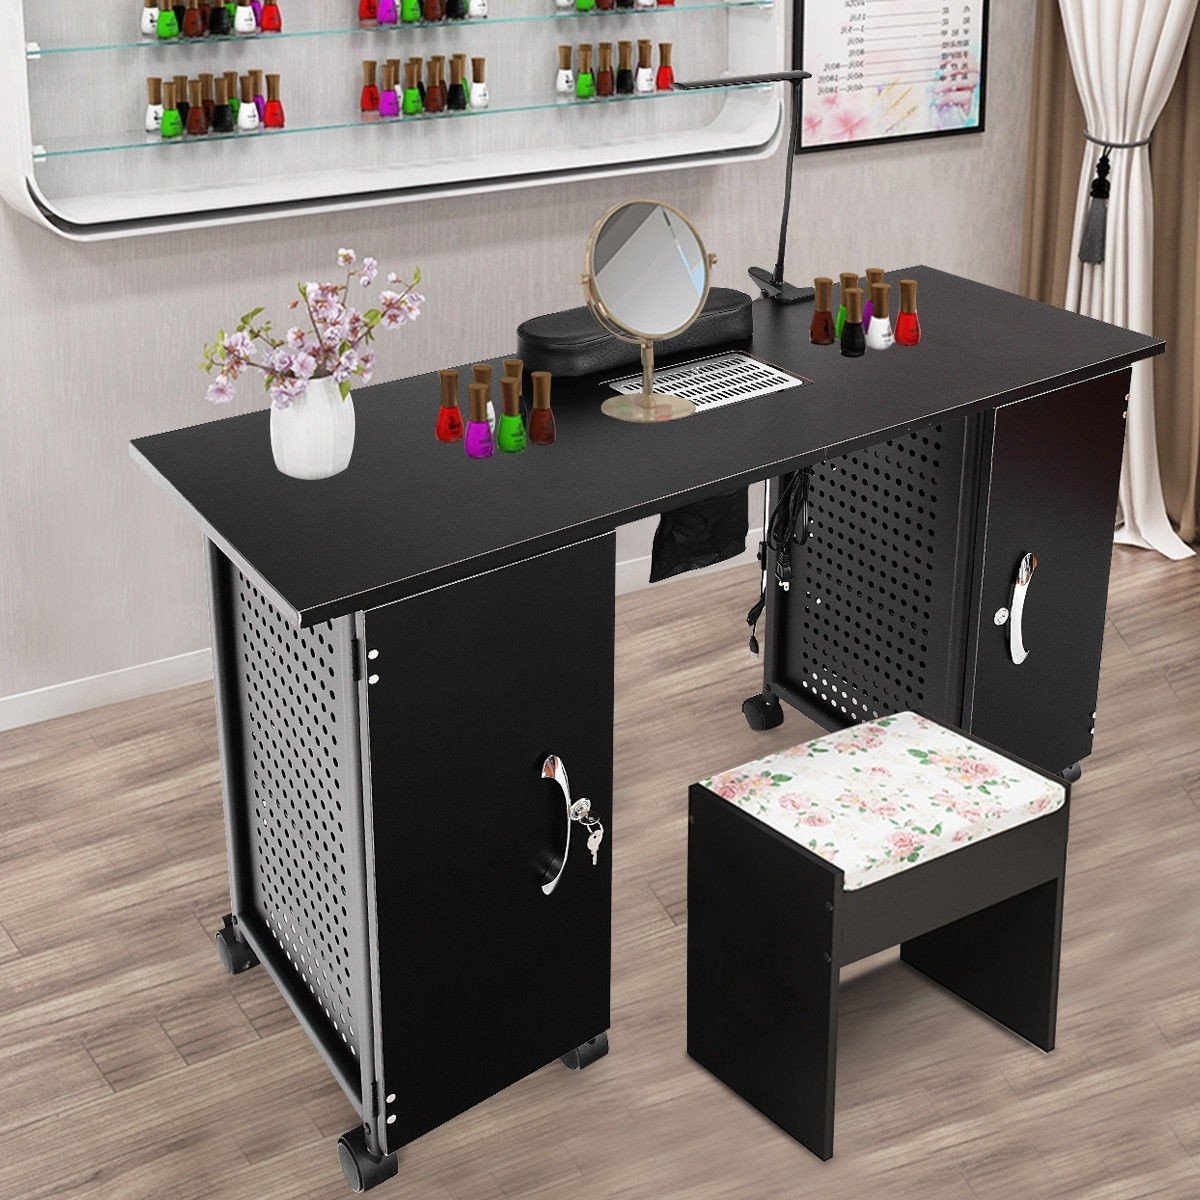 Deluxe Salon Steel Frame Manicure Table Arte com